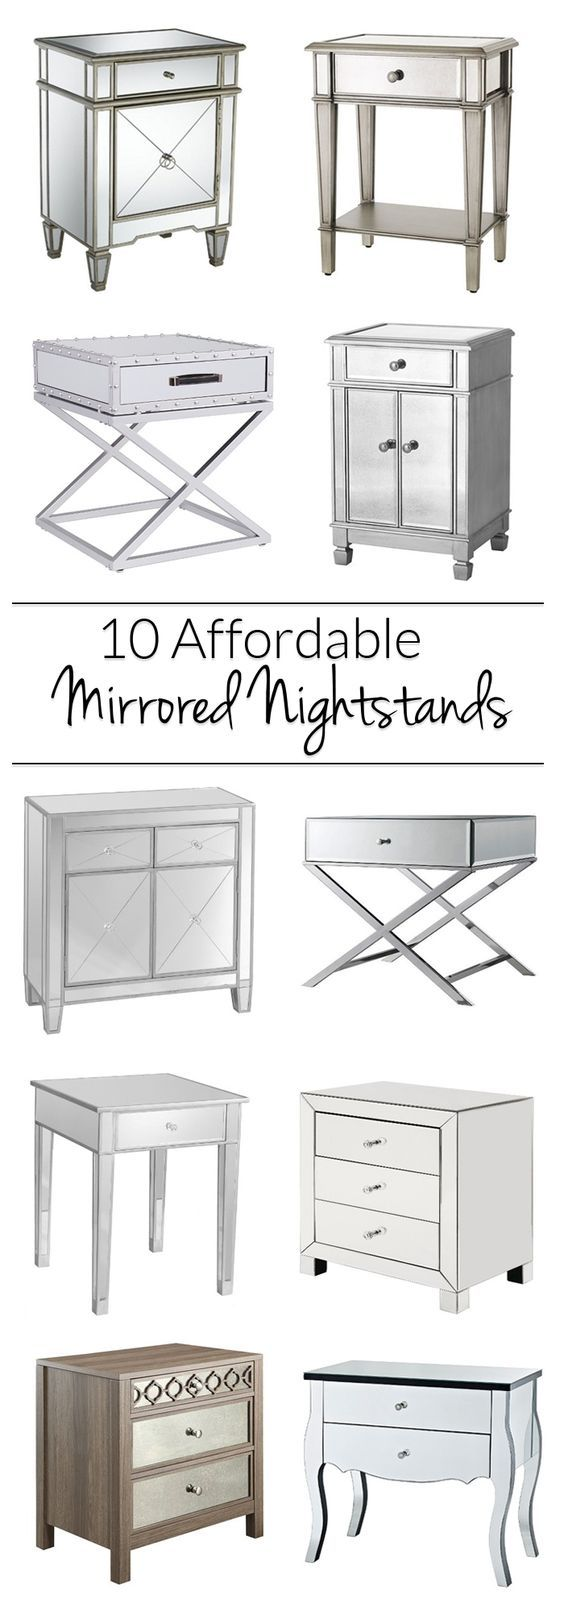 Get A Mirrored Nightstand Without Breaking The Bank All